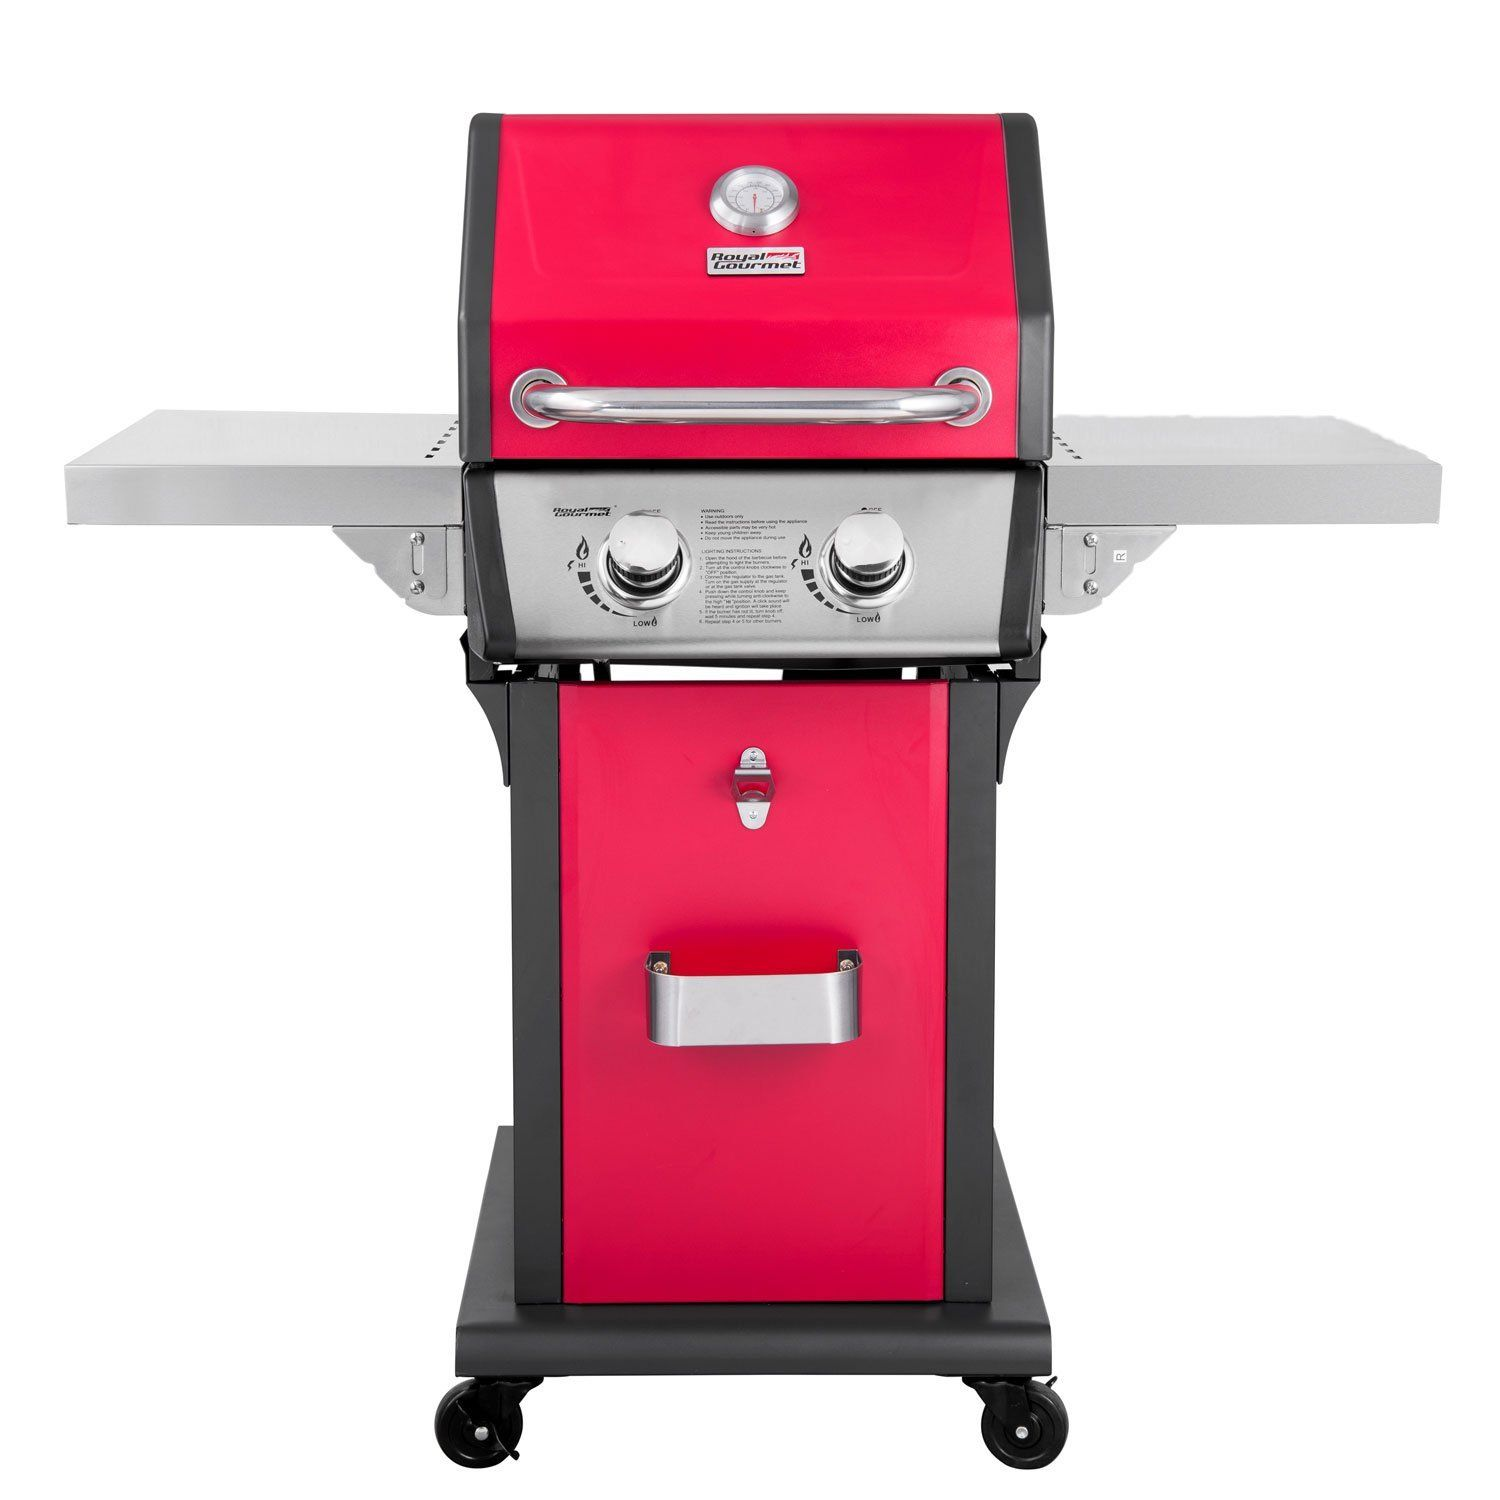 Royal Gourmet Cabinet Patio Propane Gas Grill 2 Burner Red Best Gas Grills 2019 Weber Grills Charcoal G Best Gas Grills Propane Gas Grill Best Charcoal Grill